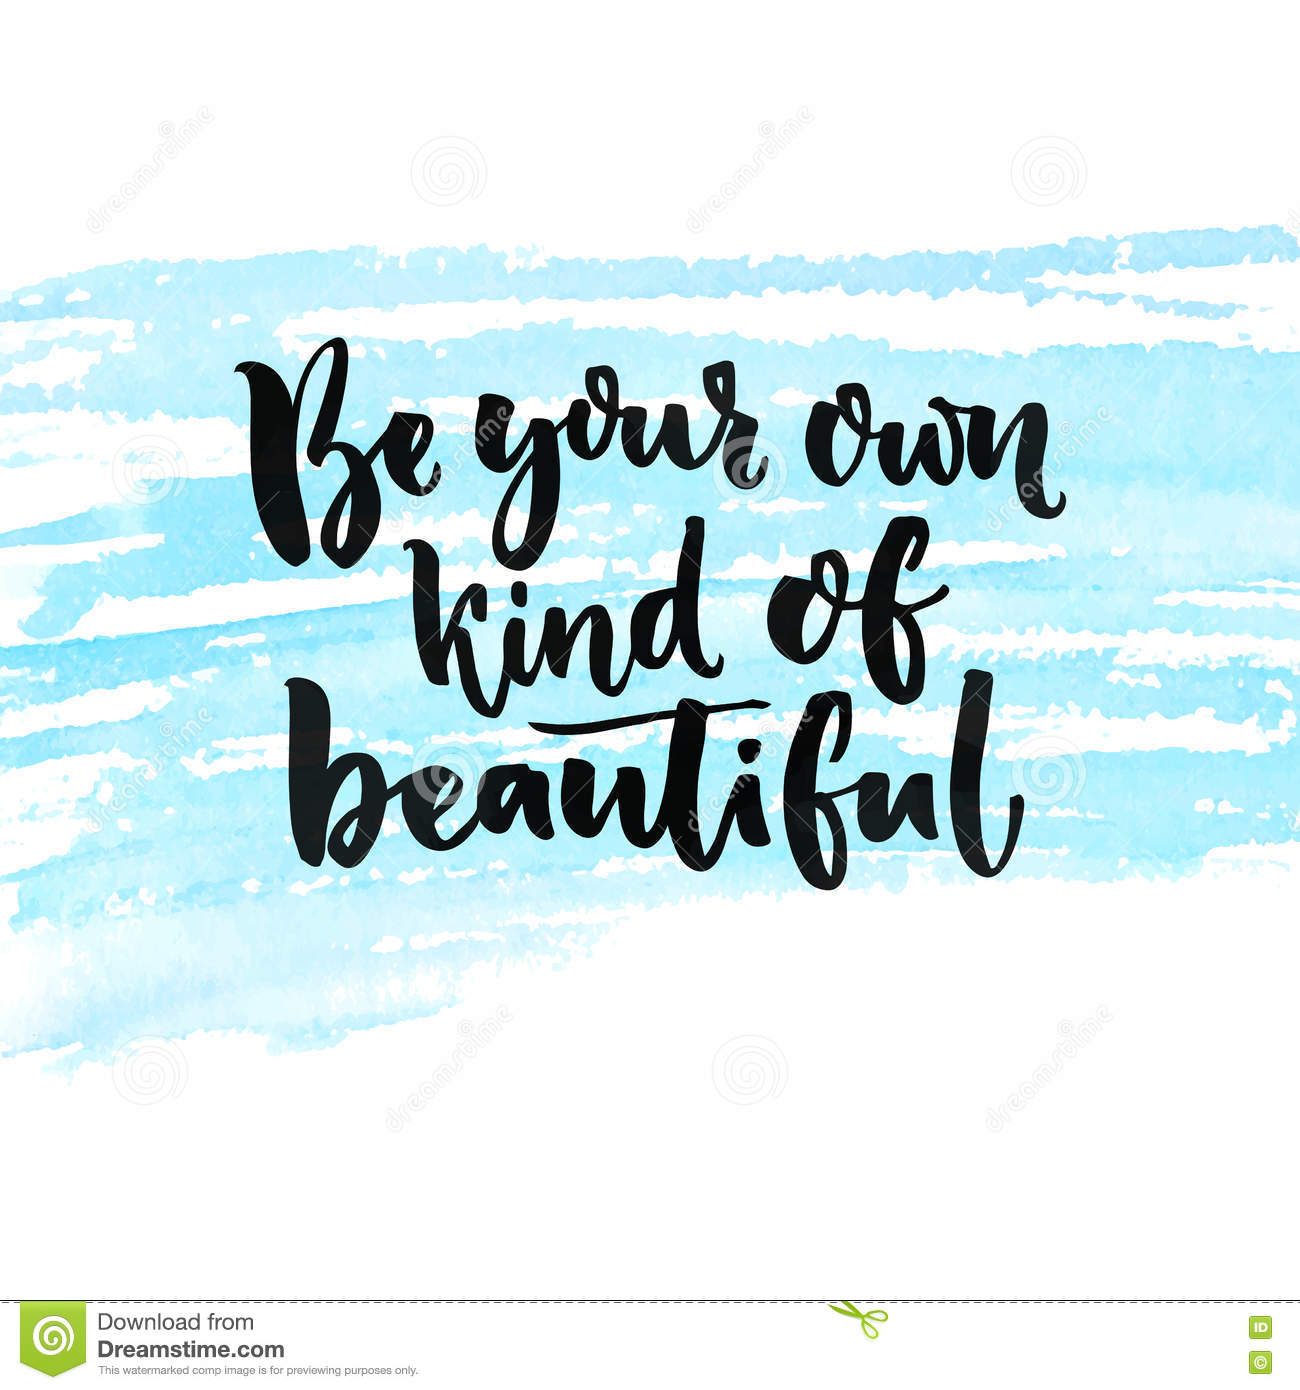 Quotes About Self Esteem Be Your Own Kind Of Beautifulinspirational Quote About Beauty